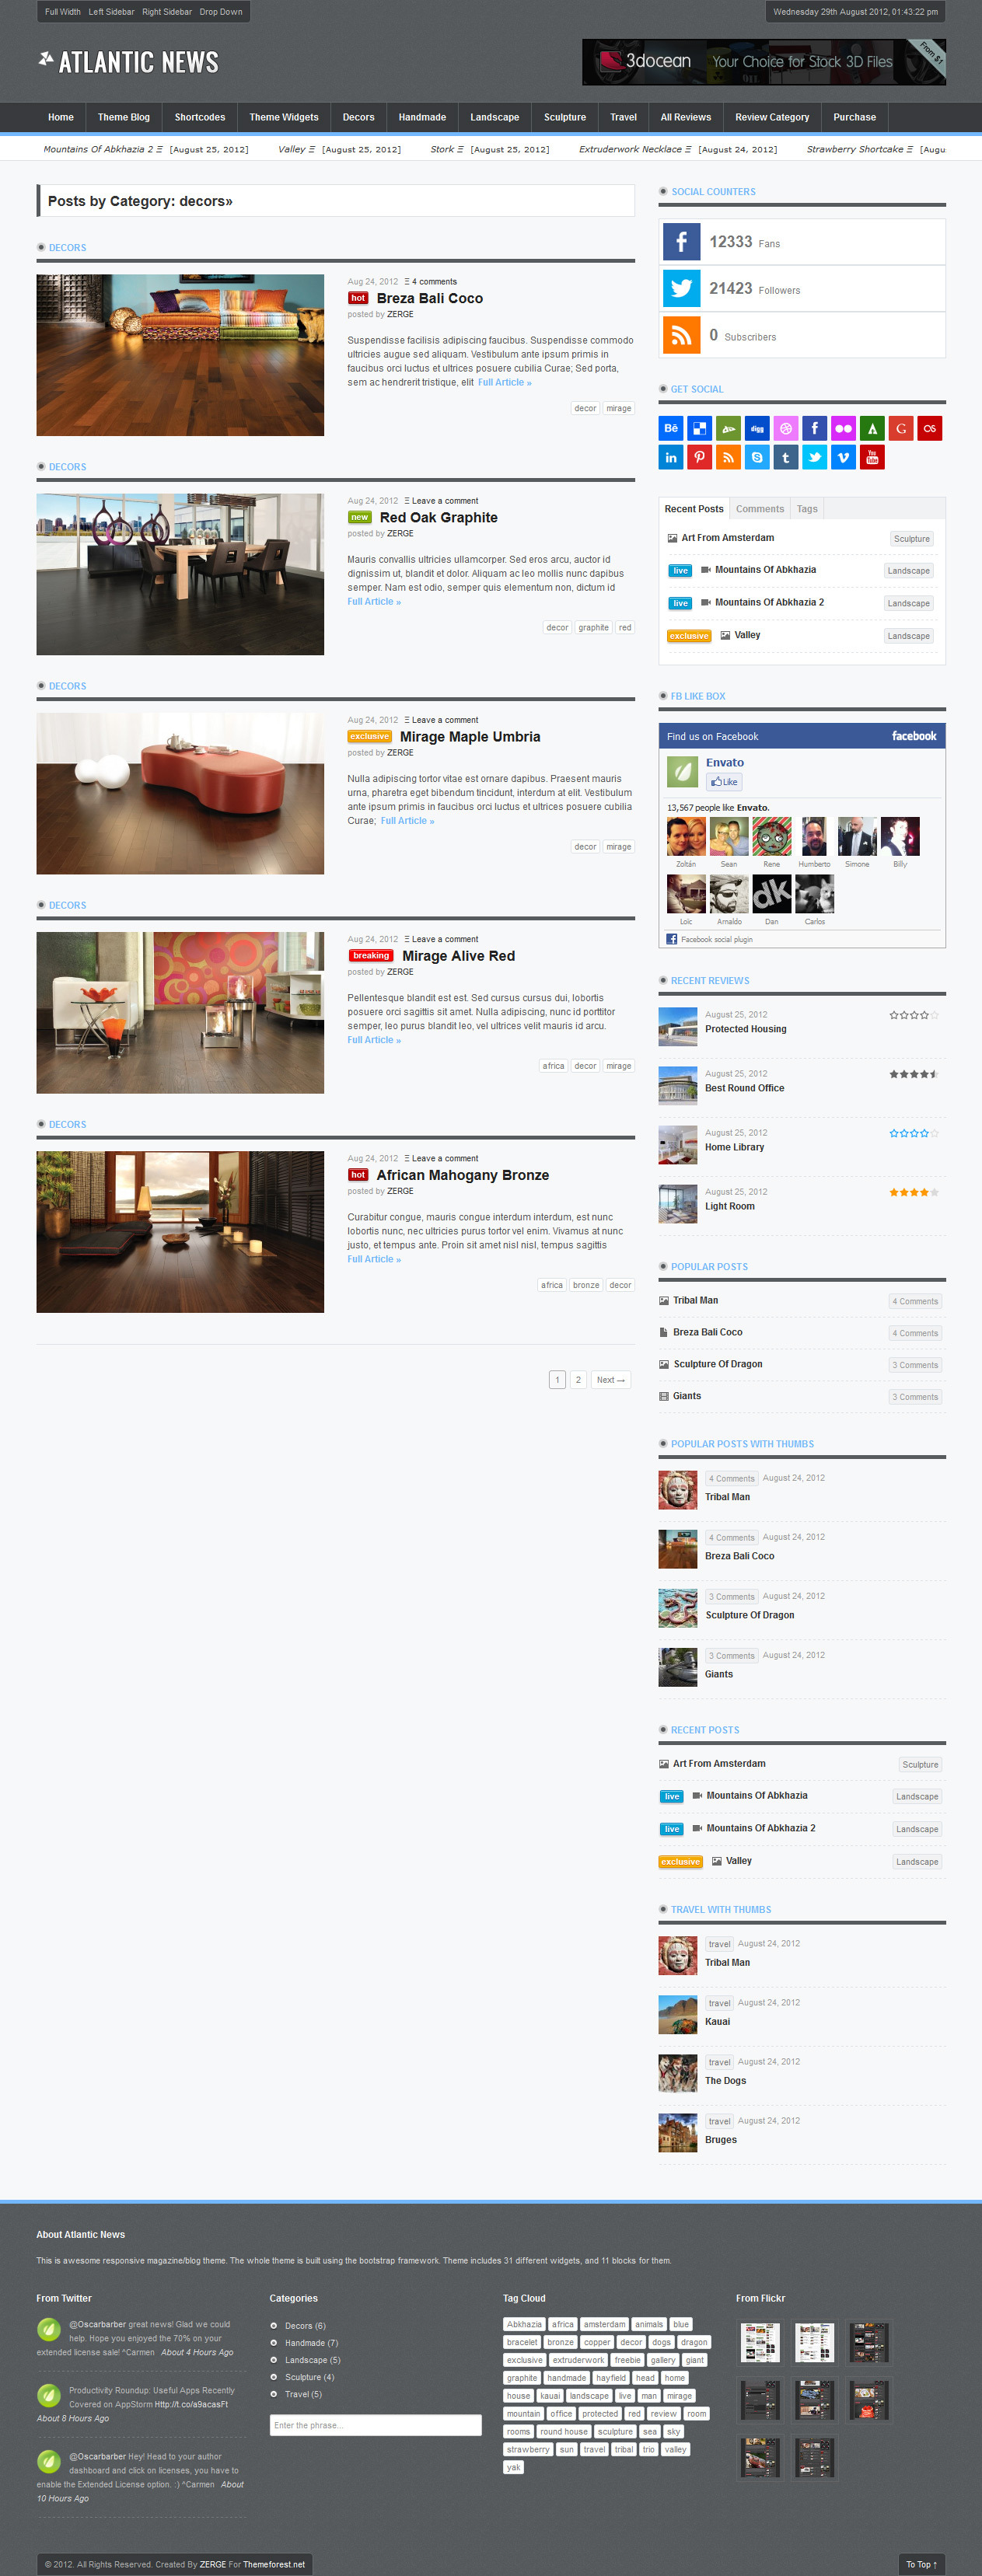 Atlantic News - Responsive WordPress Magazine Blog - 04_Category